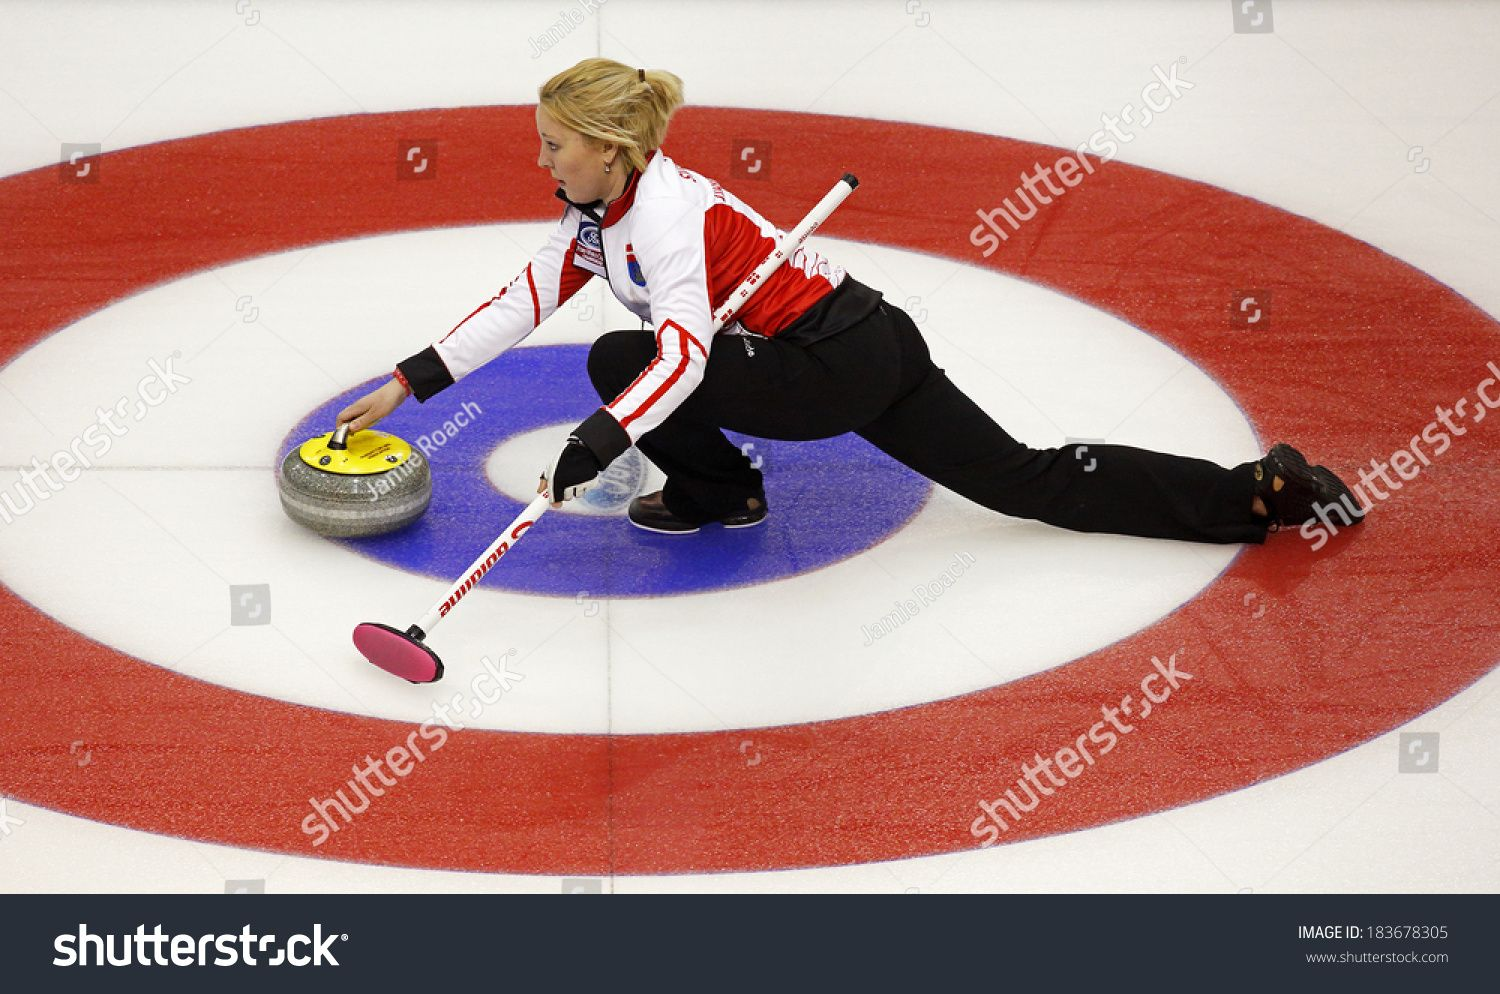 Saint John Canada March 19 Christine Svensen Of Denmark Slides Through The Rings On Her Stone Delivery At The Ford With Images St John Women S Curling St John S Canada